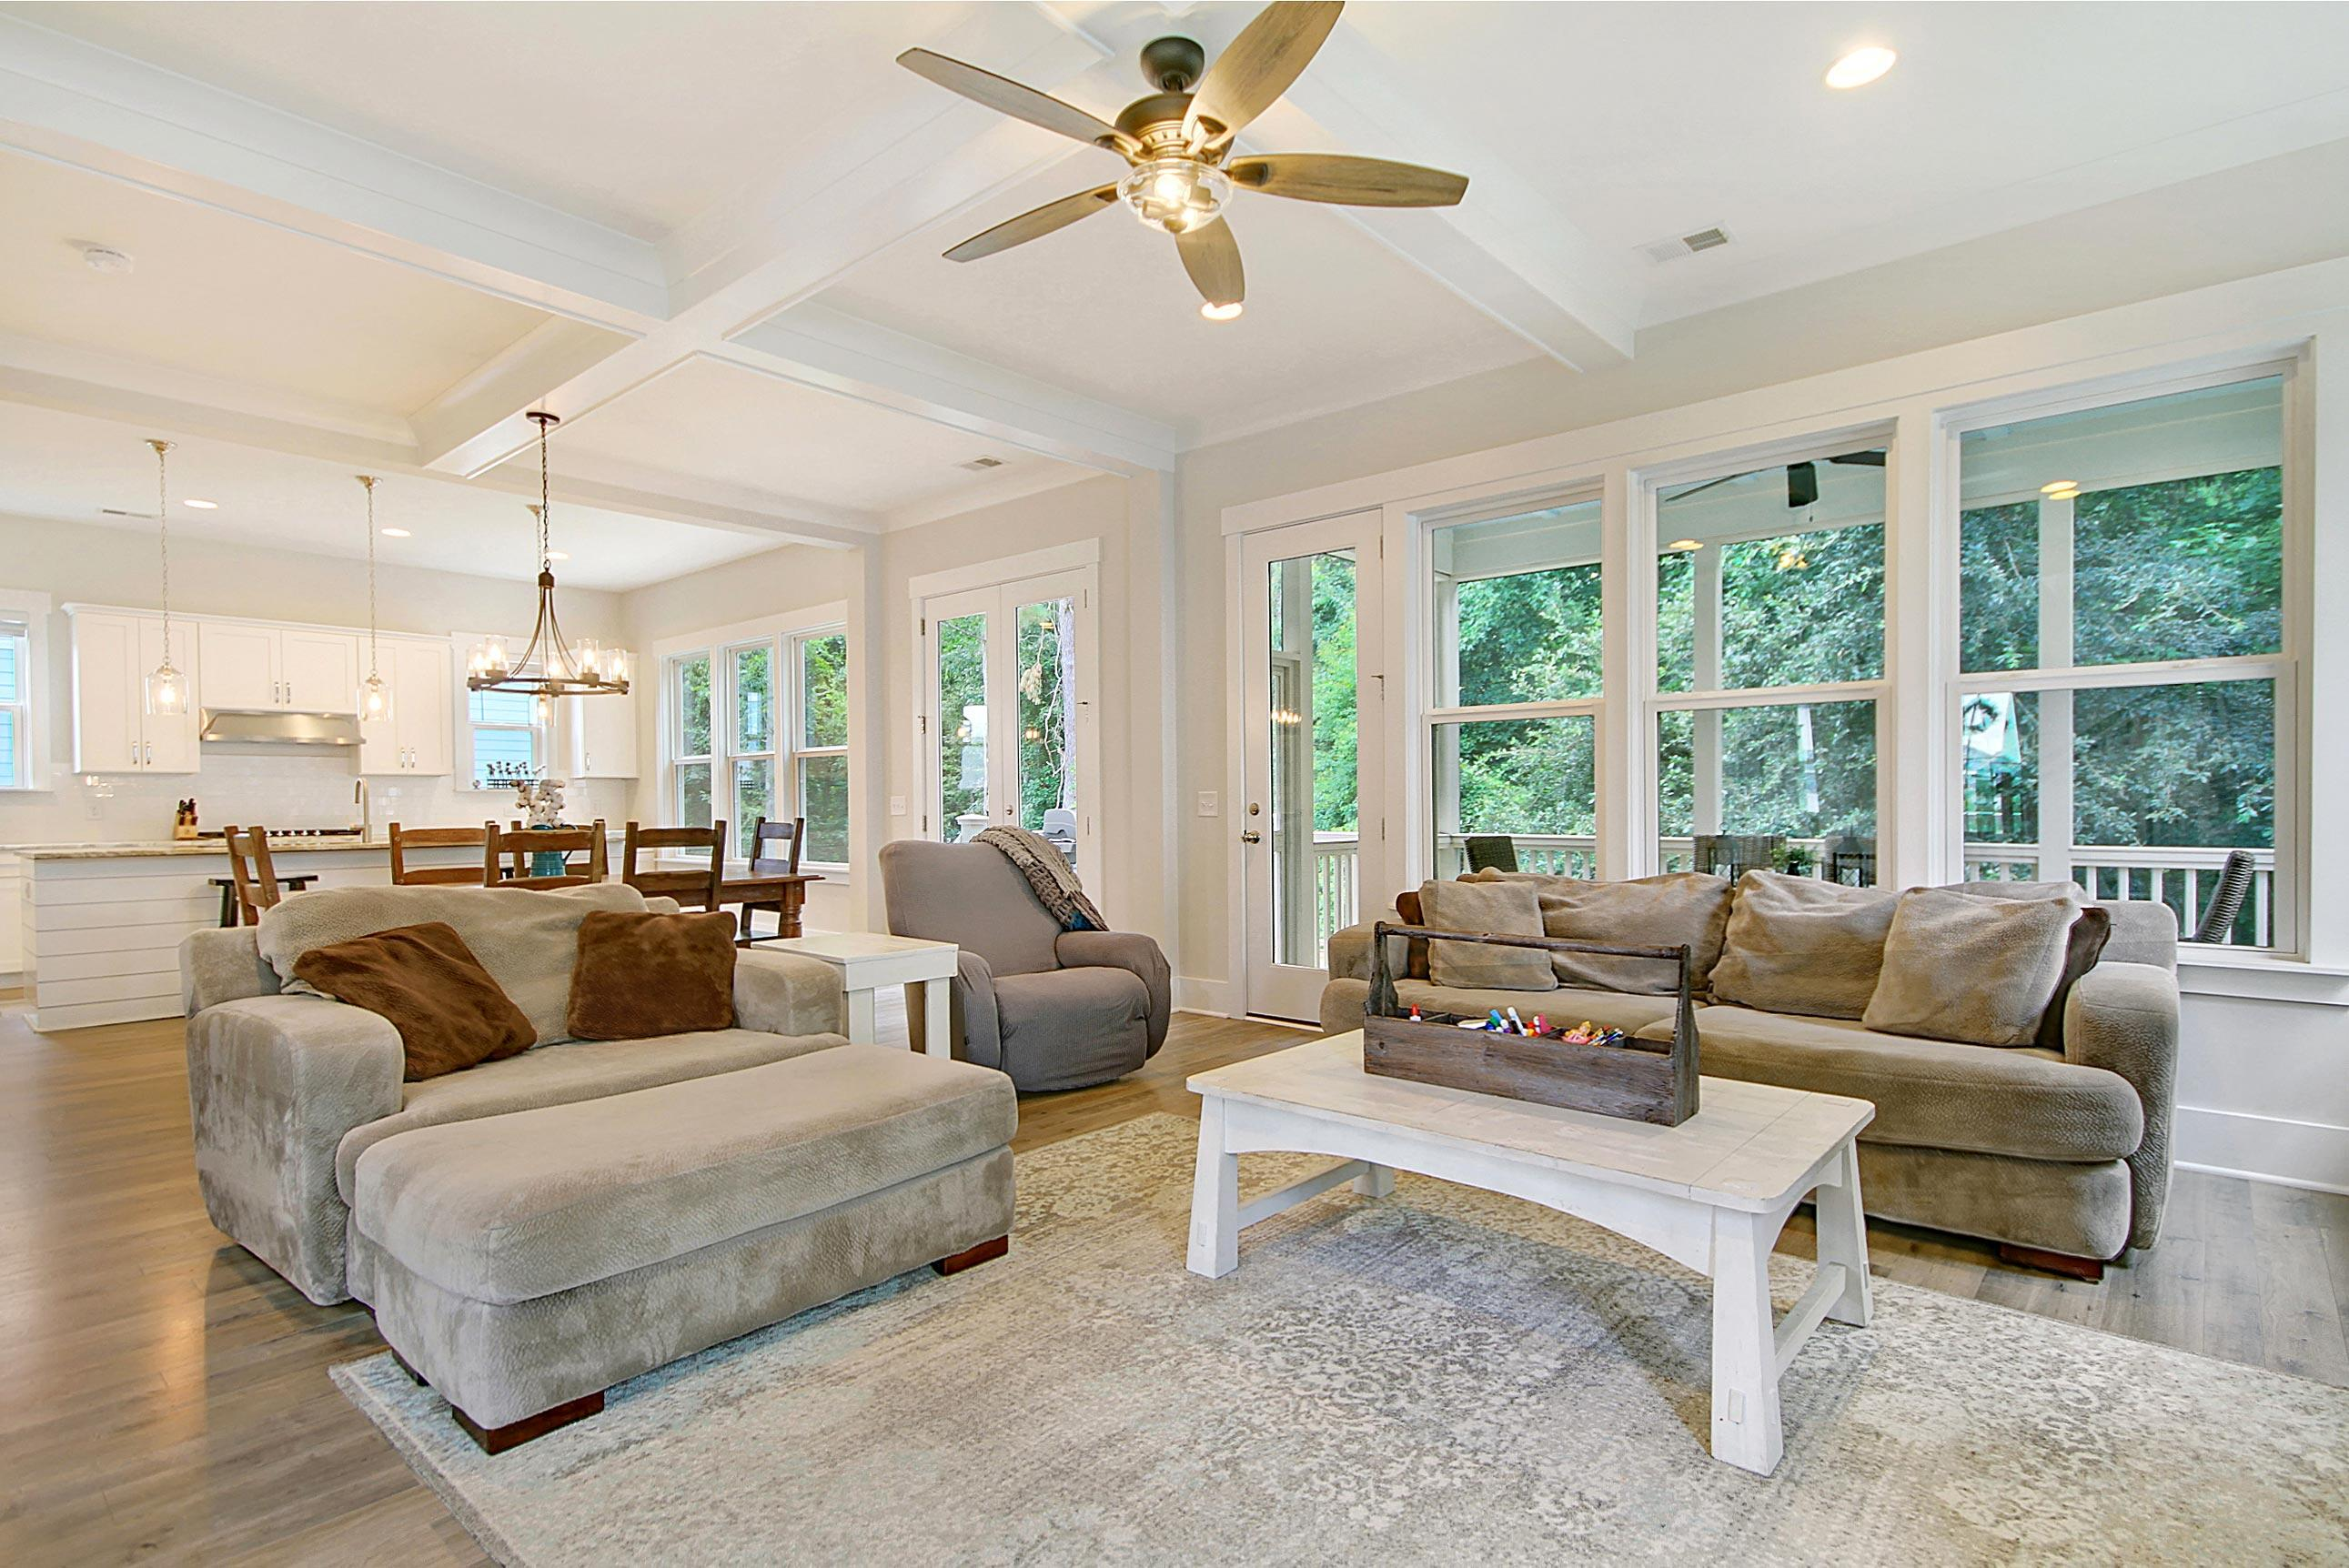 Stratton by the Sound Homes For Sale - 3542 Saltflat, Mount Pleasant, SC - 12